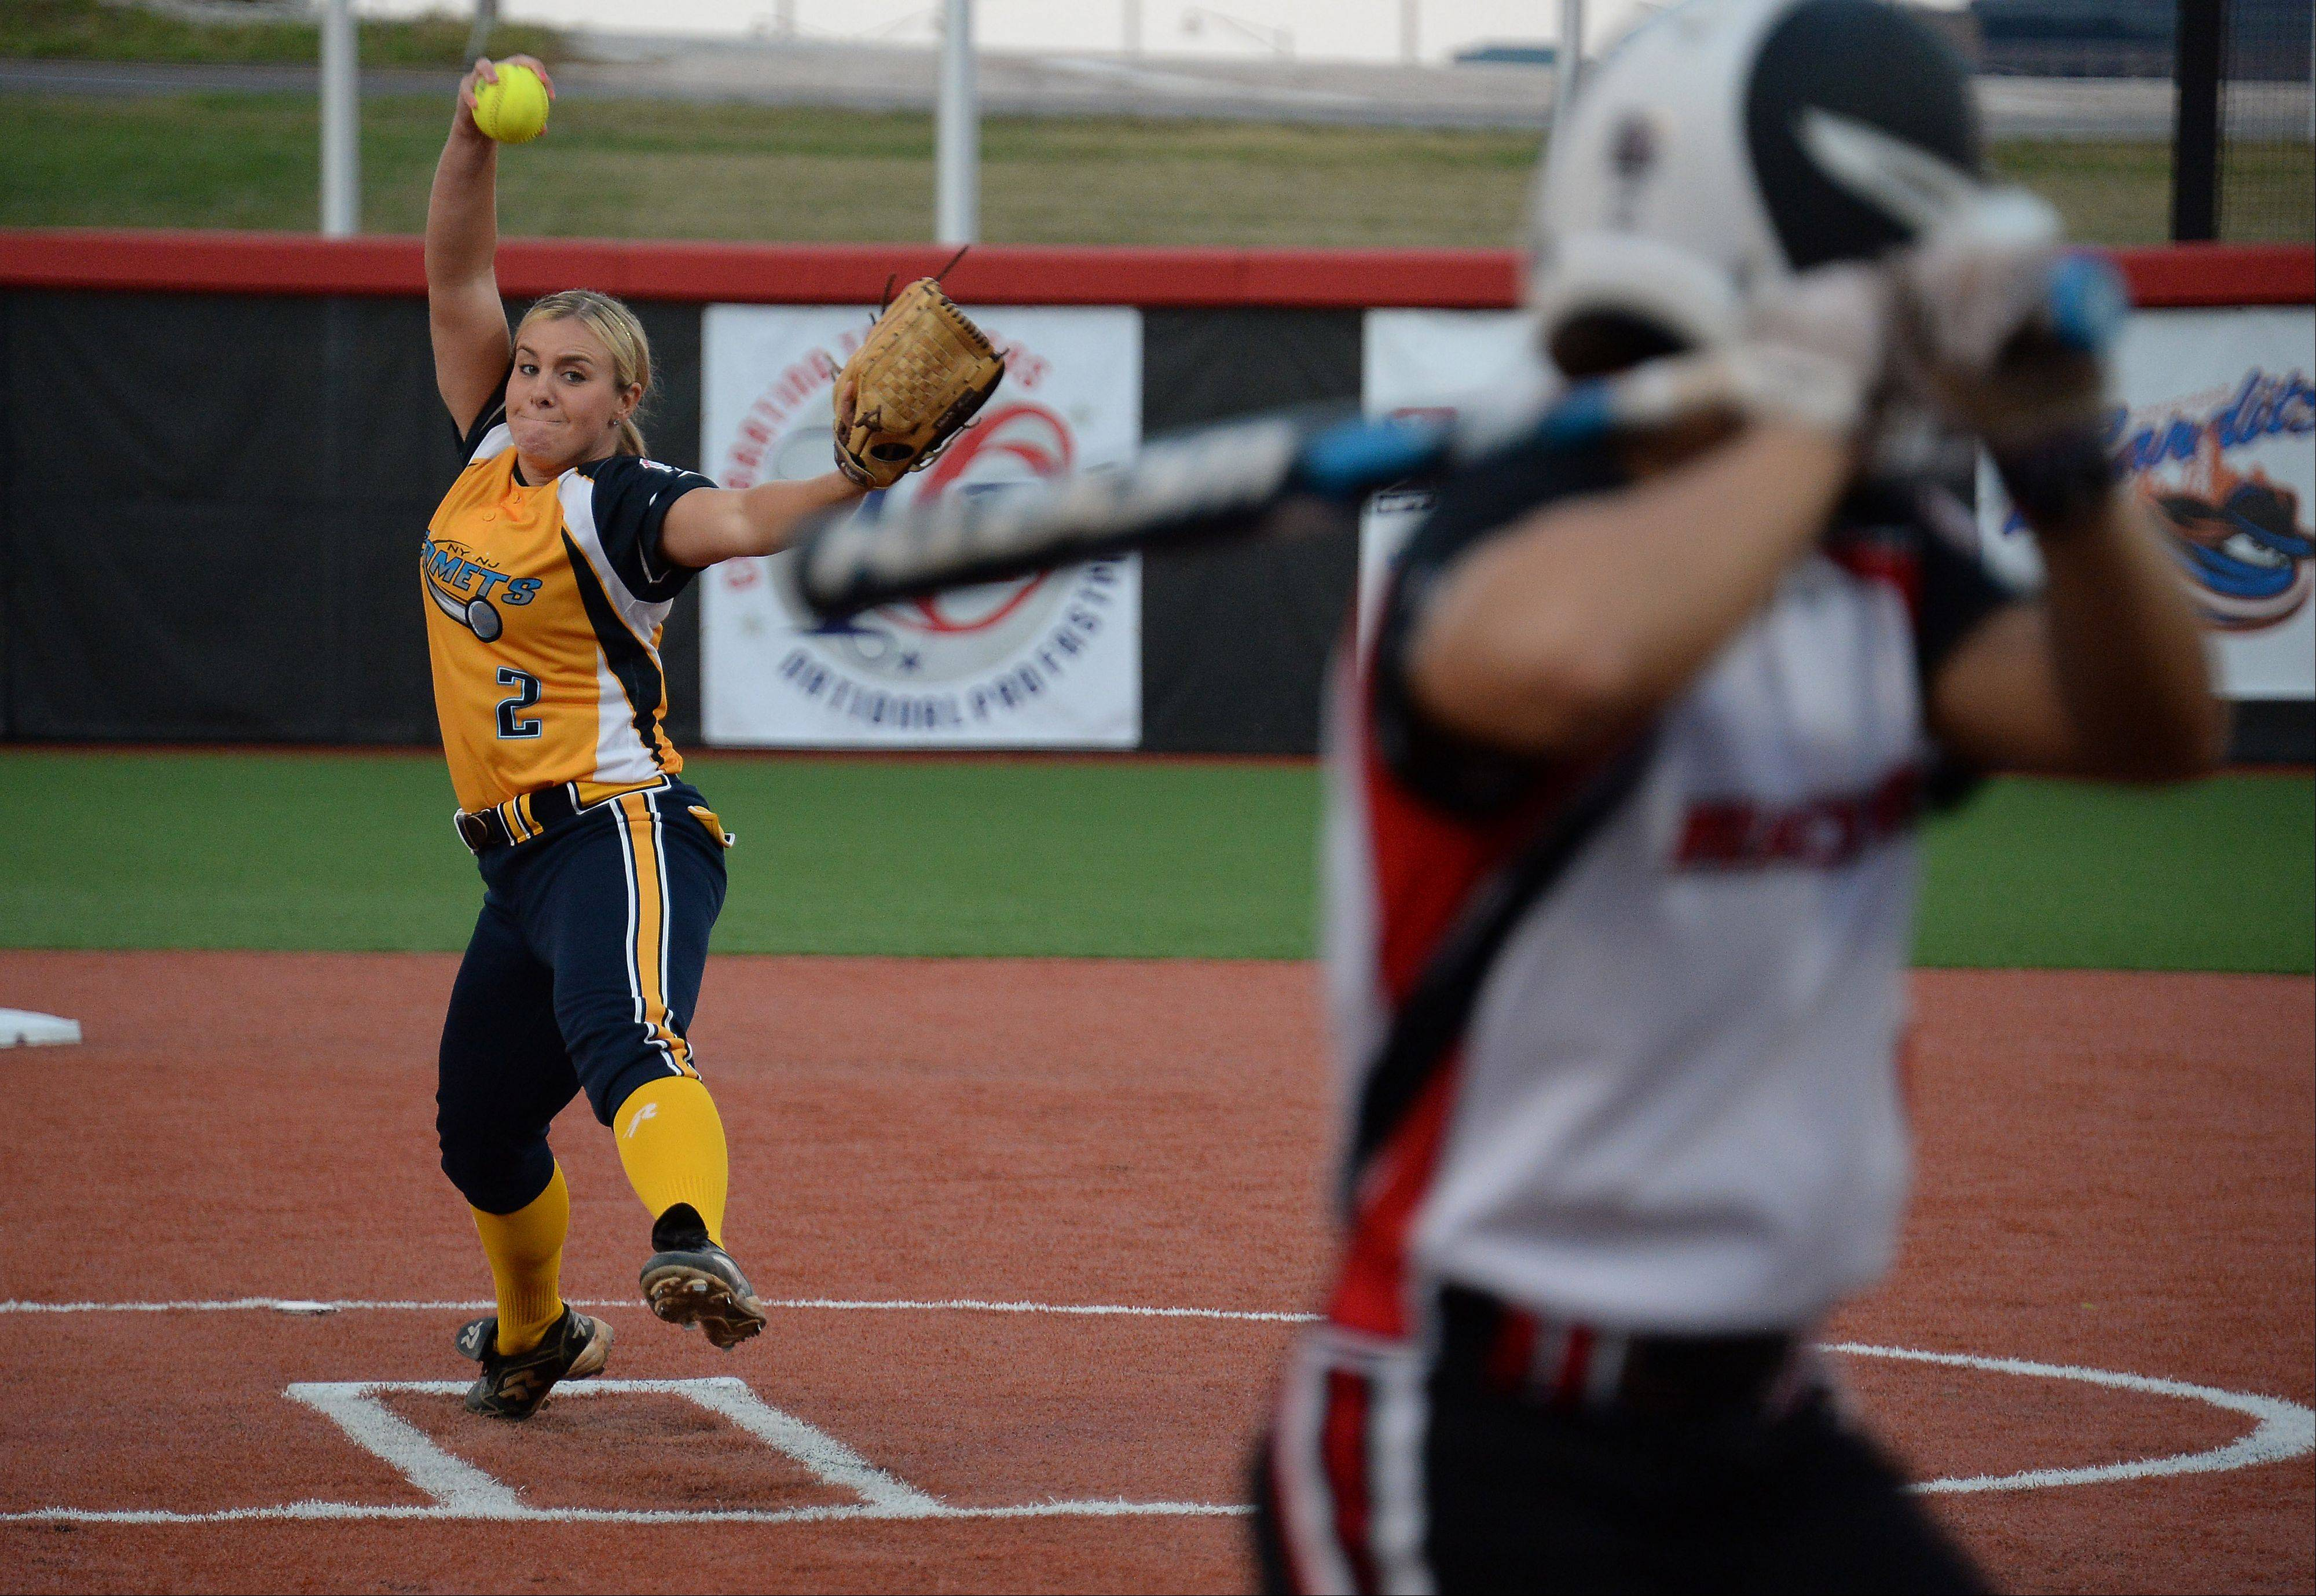 Comets pitcher Olivia Galiti fires battles a Racers batter in the first inning of the National Pro Fastpitch 2013 Championship Series in Rosemont on Thursday. Akron won the game 4-2 to advance.